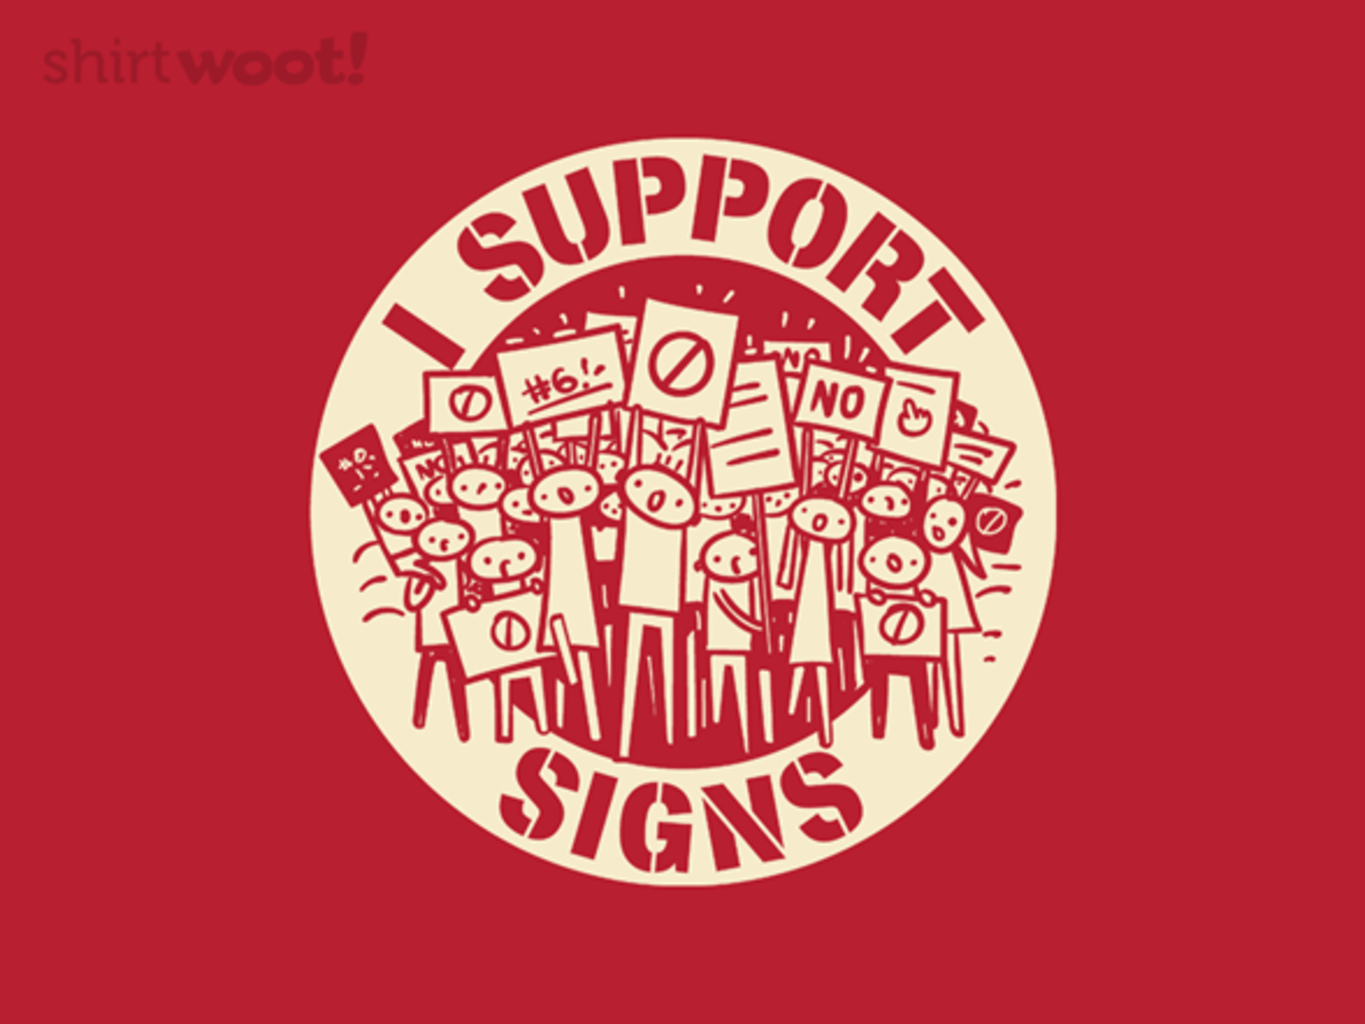 Woot!: I Support Signs